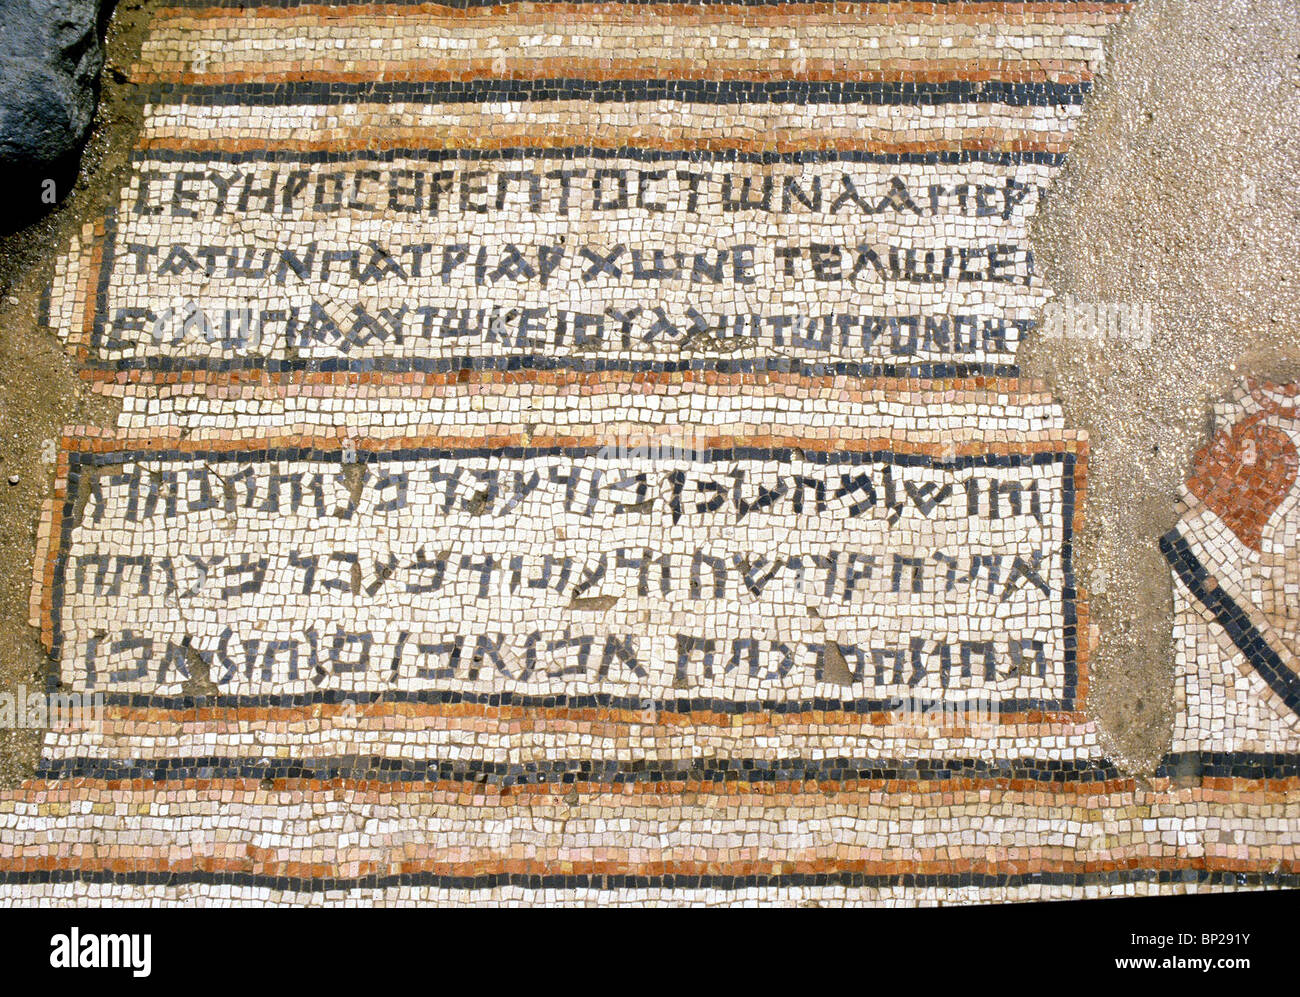 INSCRIPTION ON THE MOSAIC FLOOR OF THE 5TH. C. TIBERIAS SYNAGOGUE THE HEBREW TEXT TRANSLATED INTO GREEK PRIZES THE - Stock Image